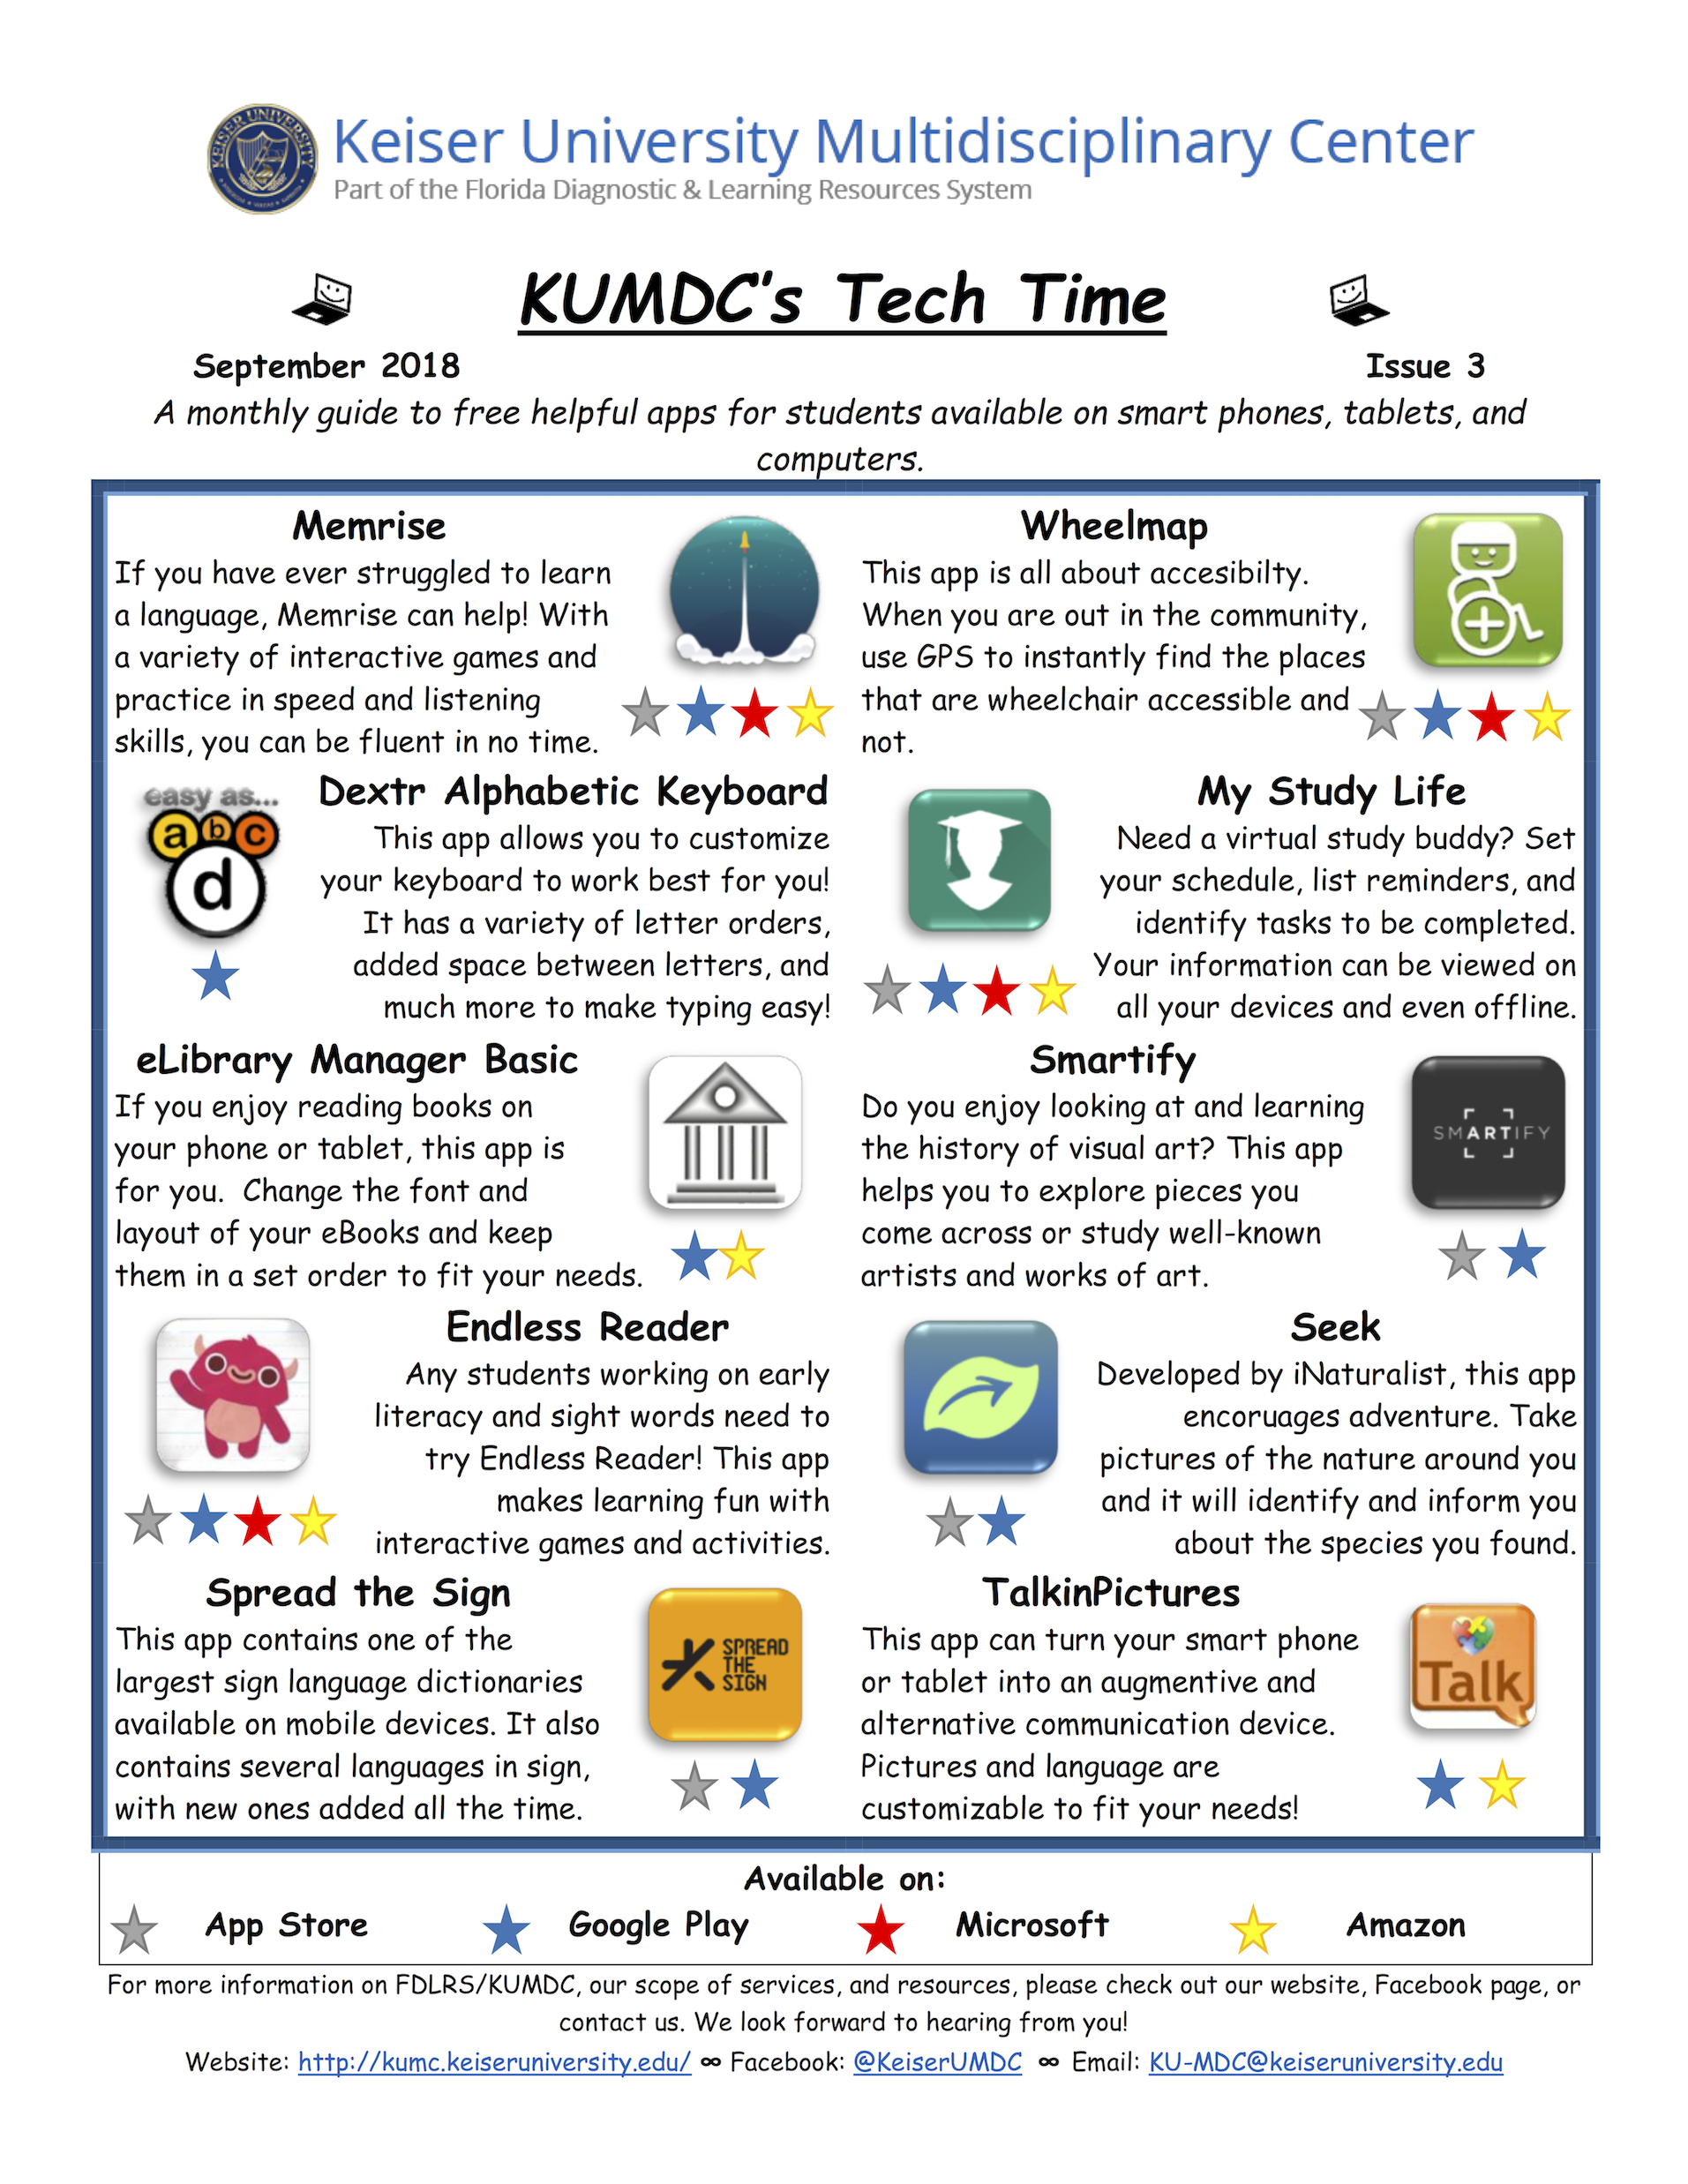 image with clickable link to September 2018 TechTime Newsletter